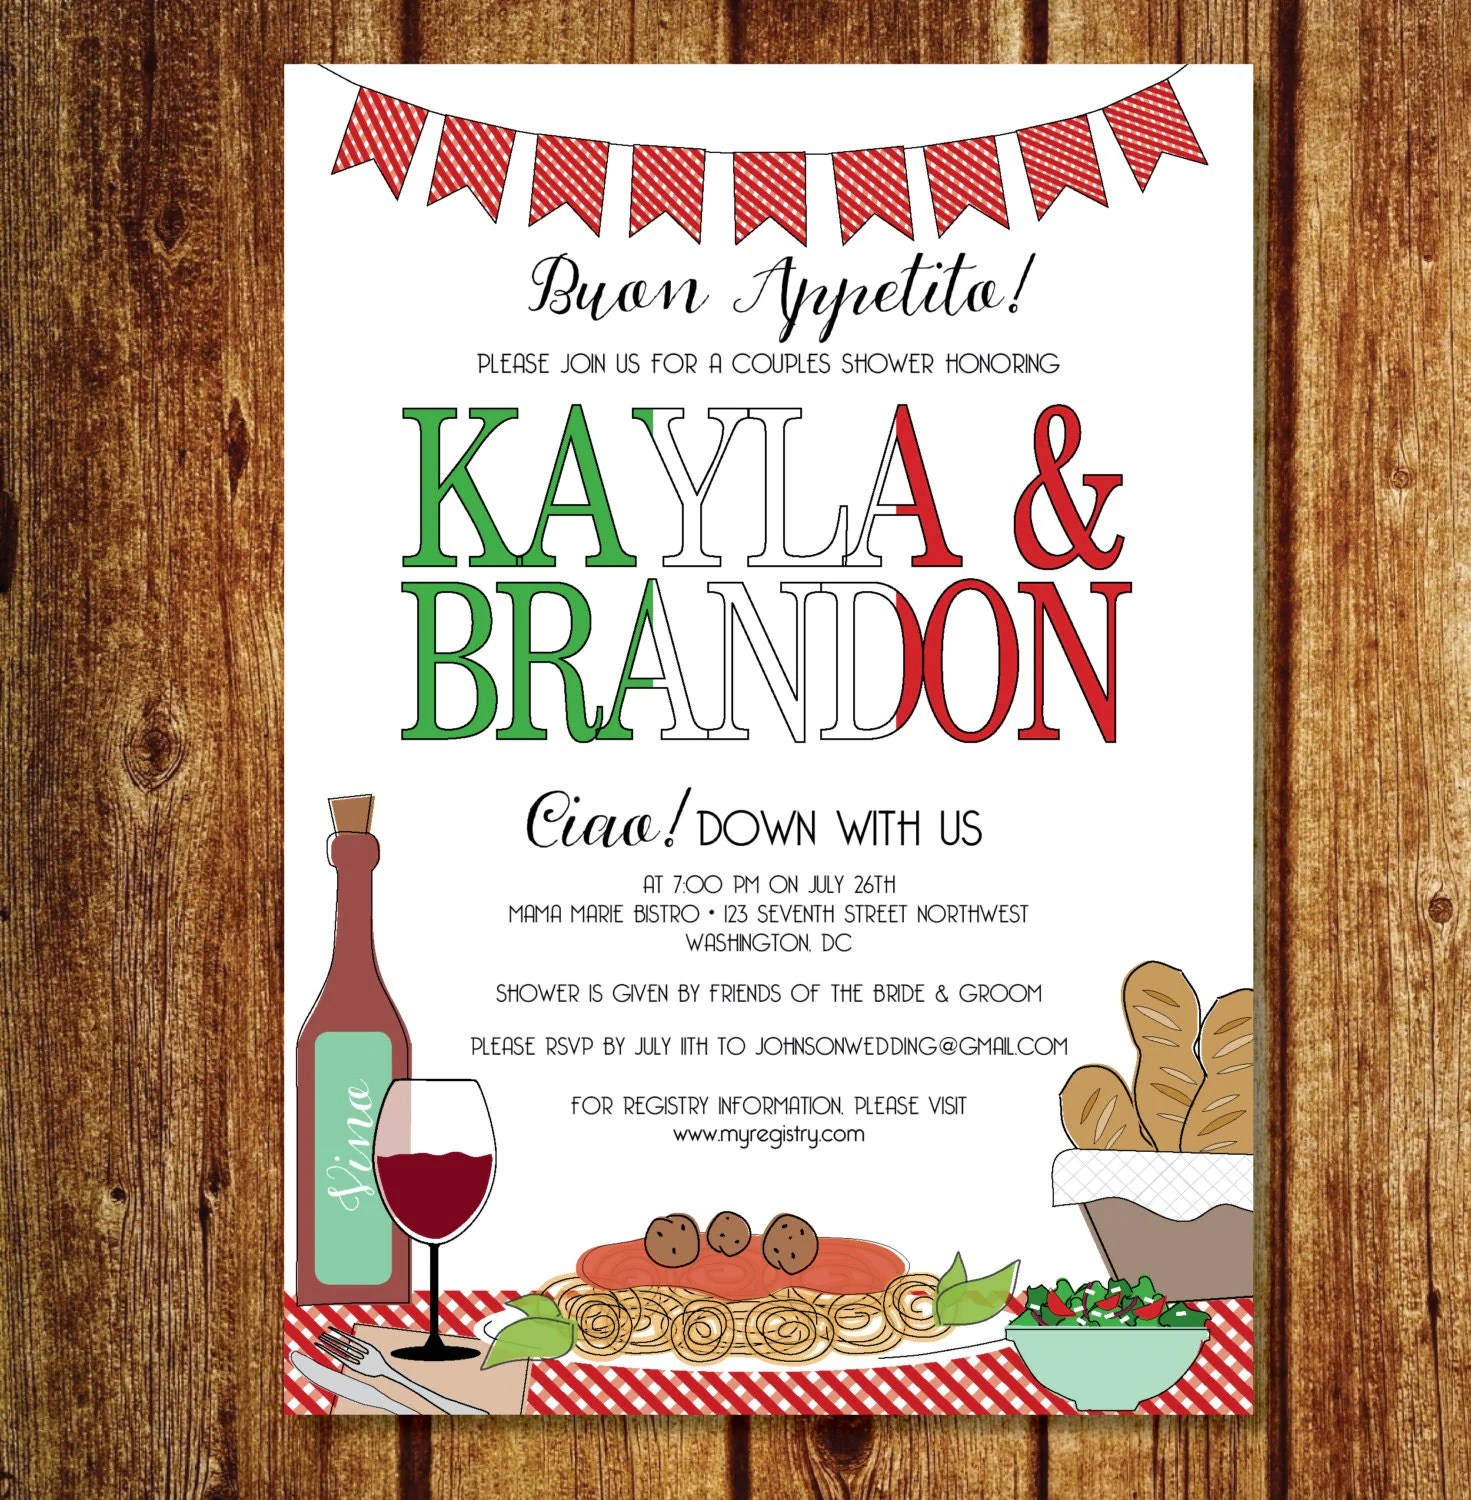 Create Your Own Wedding Invitations Online